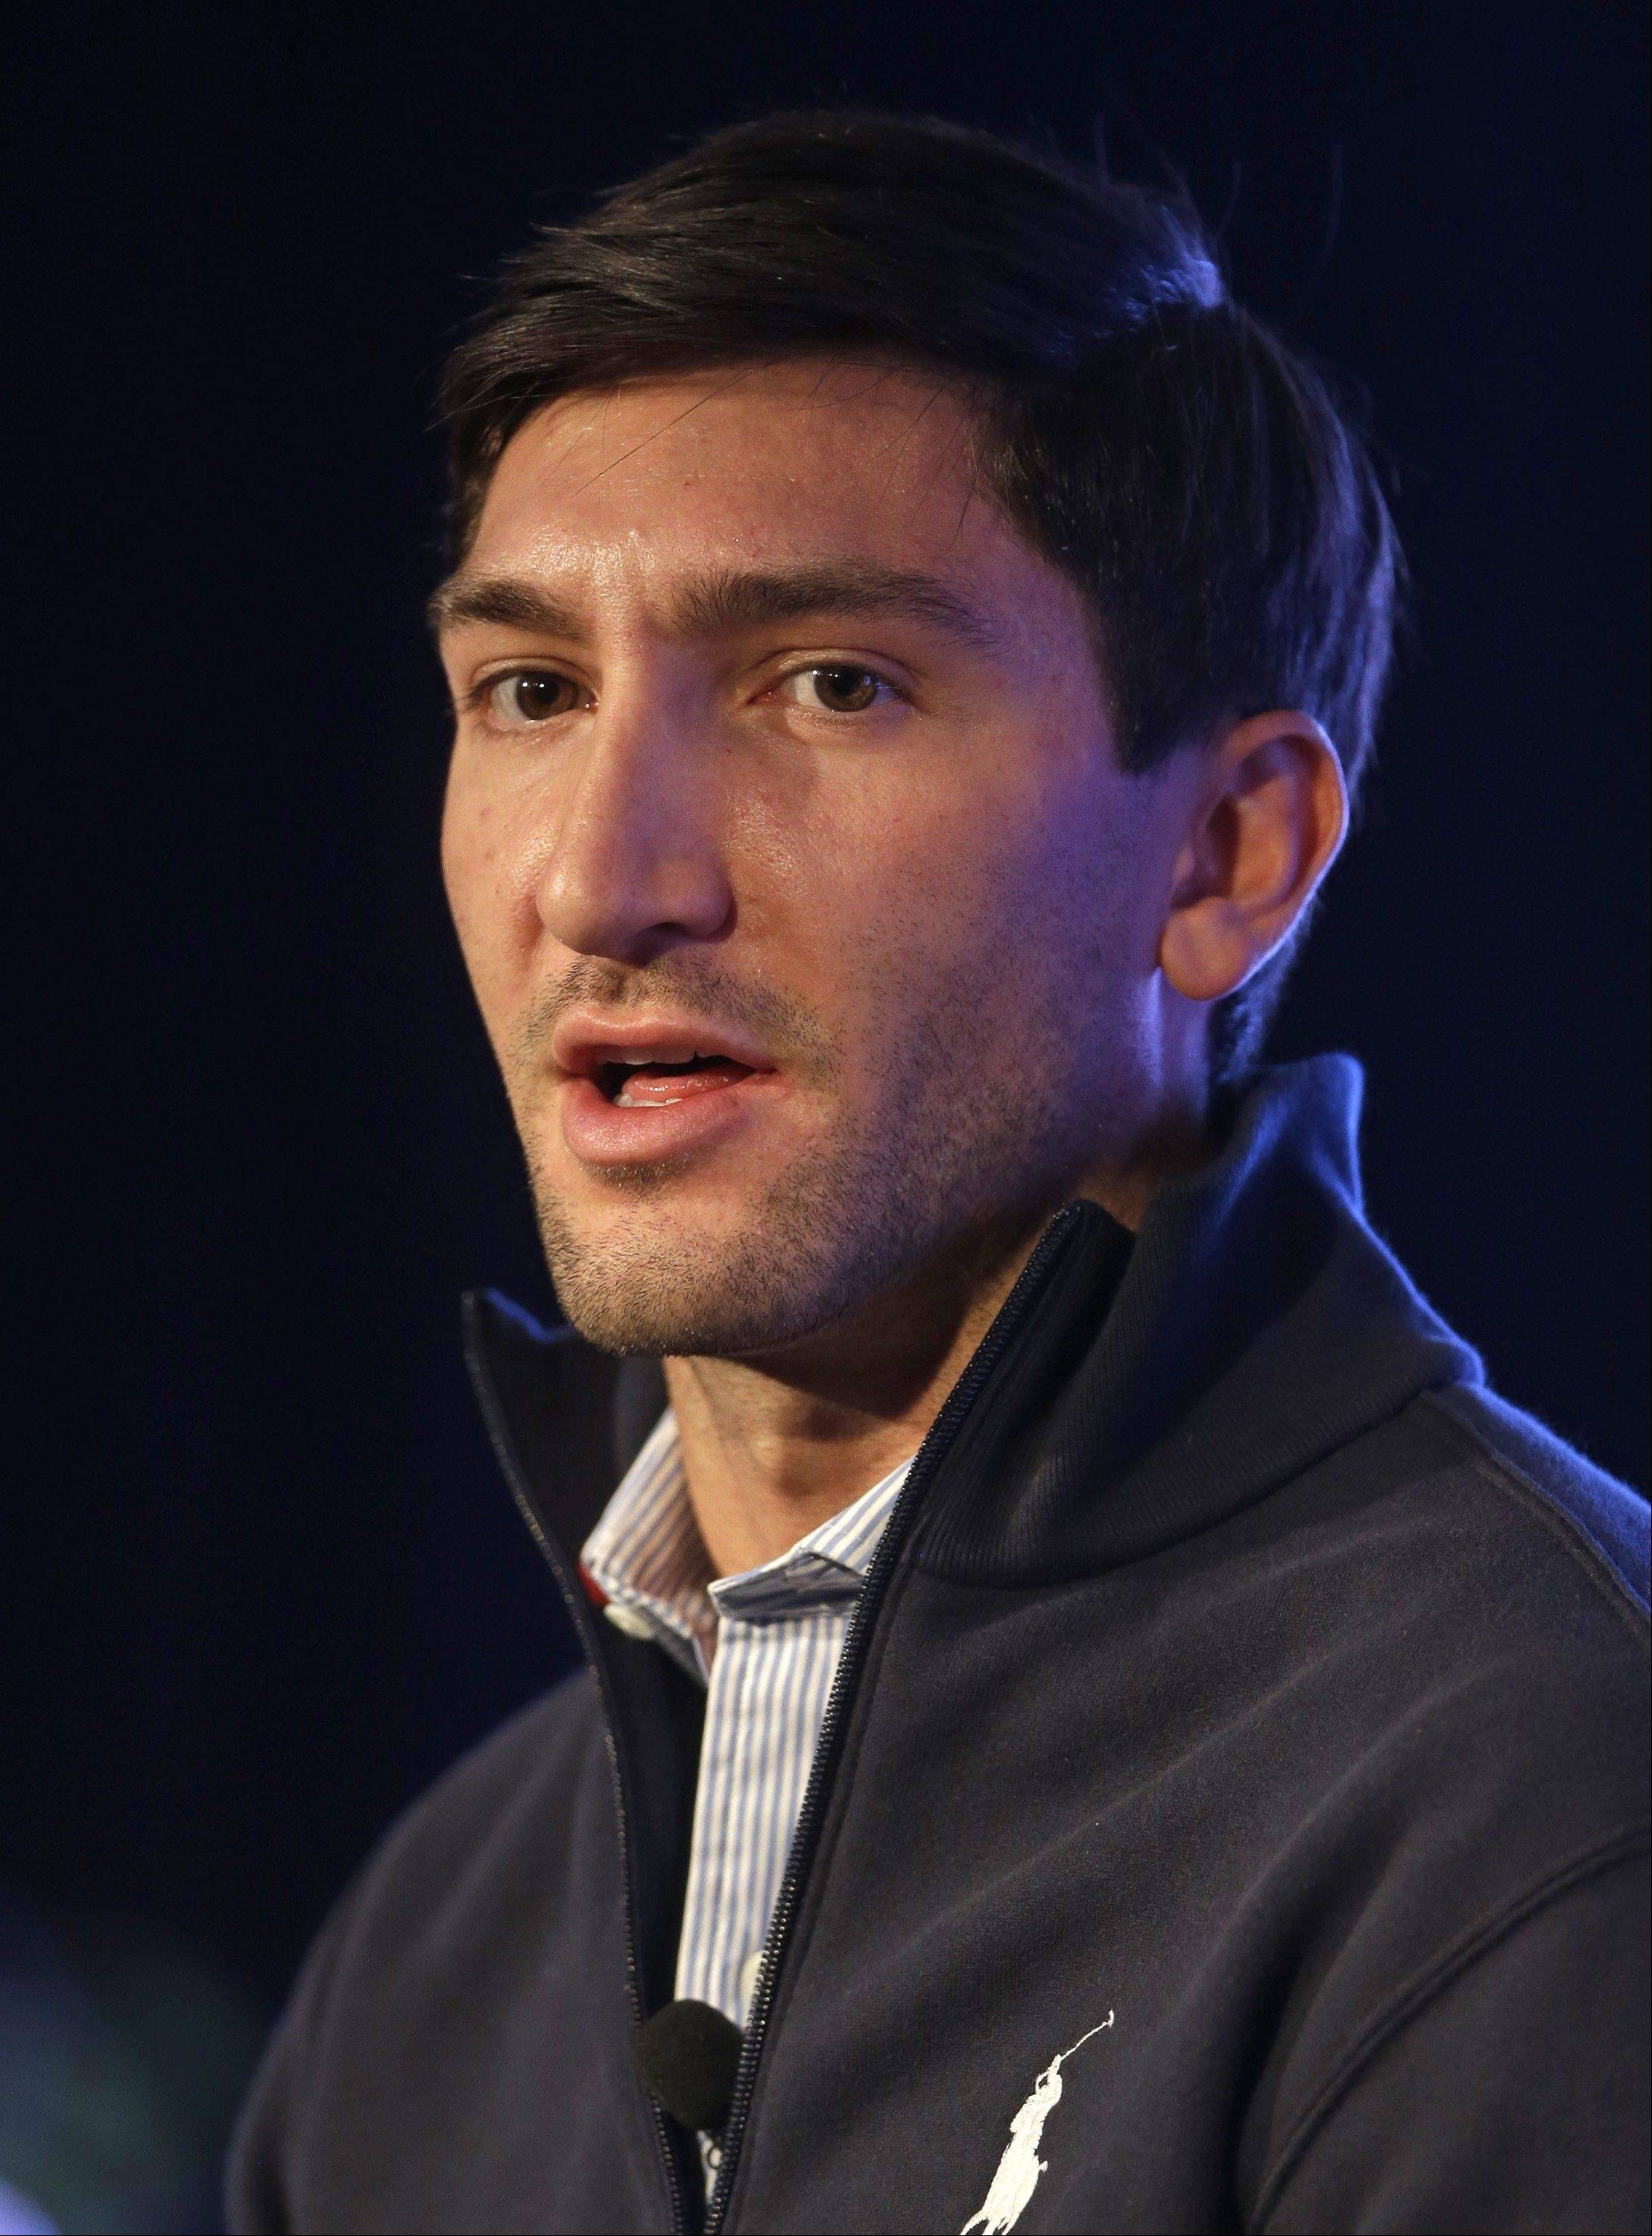 Olympic figure skating champion Evan Lysacek is treating his torn labrum with physical therapy.